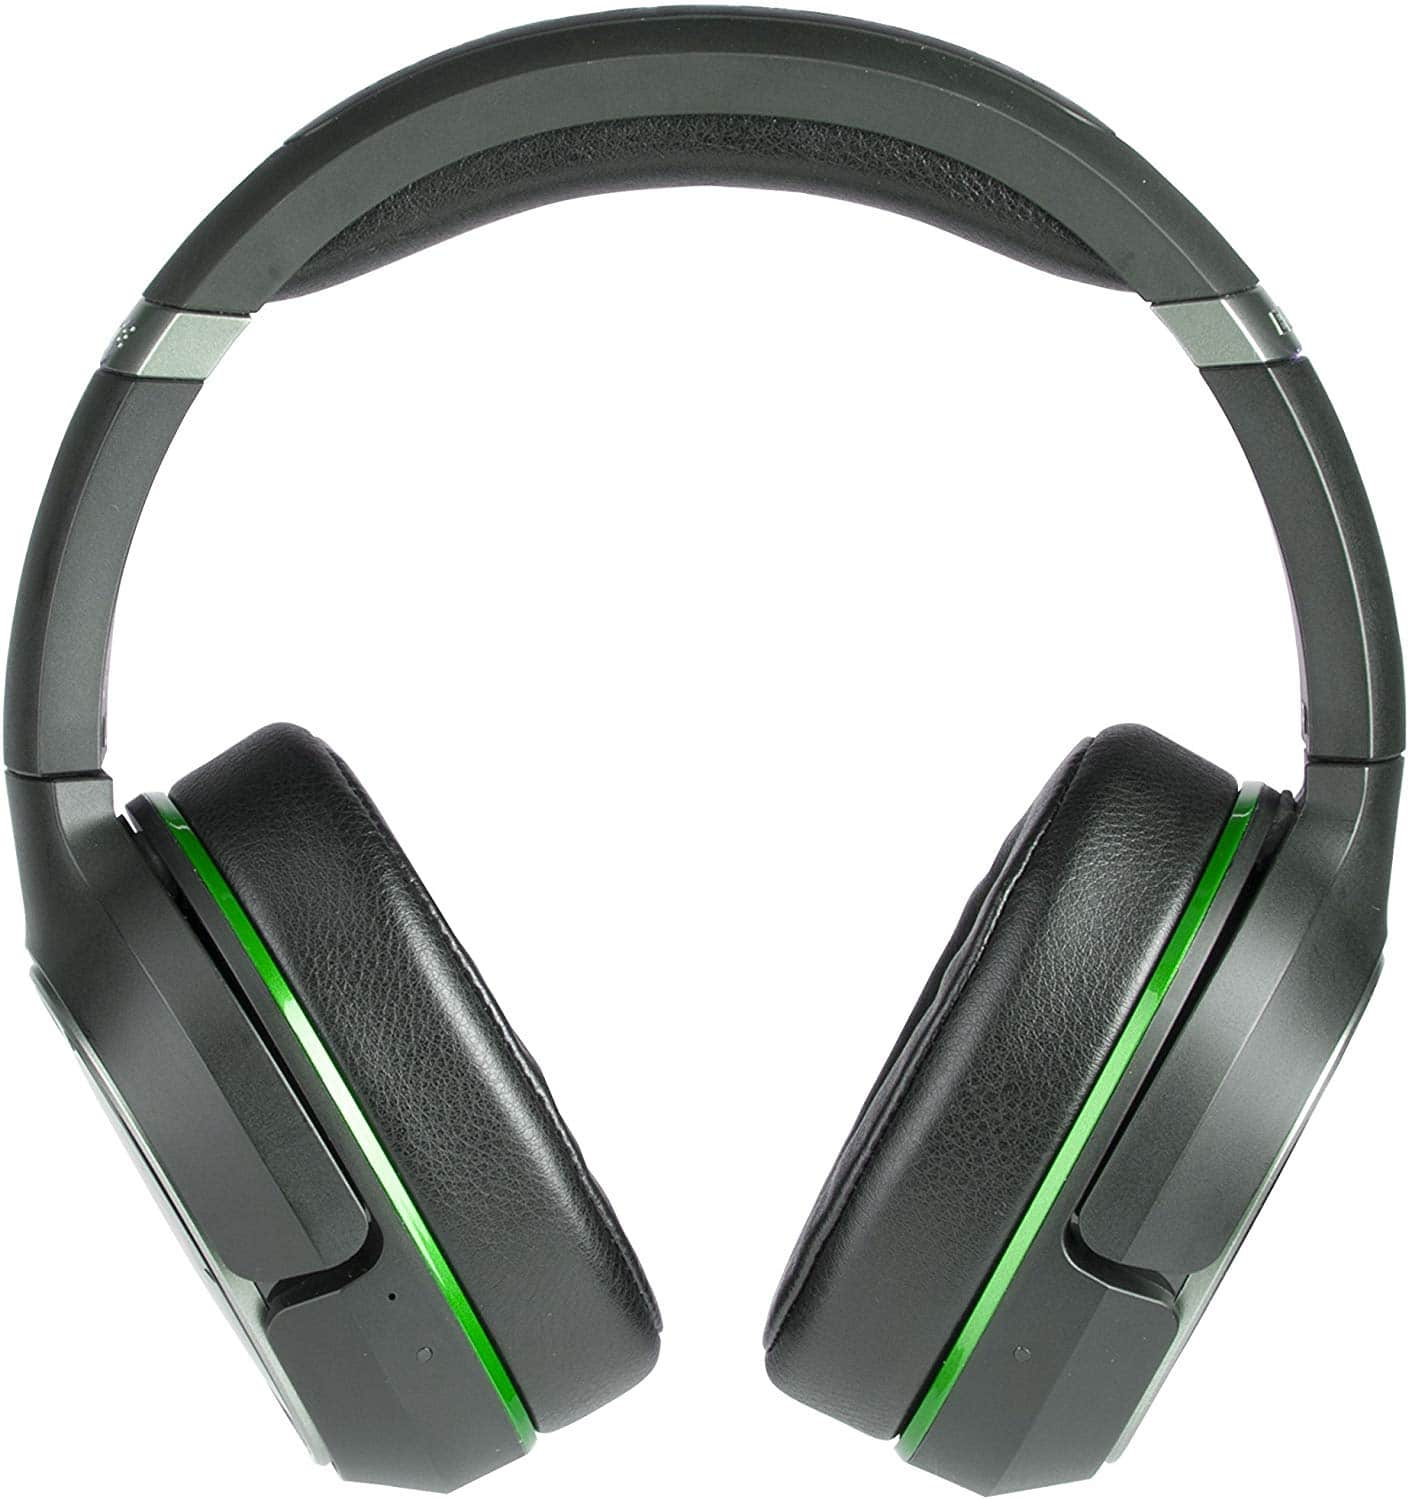 Turtle Beach - Ear Force Elite 800X Premium Fully Wireless